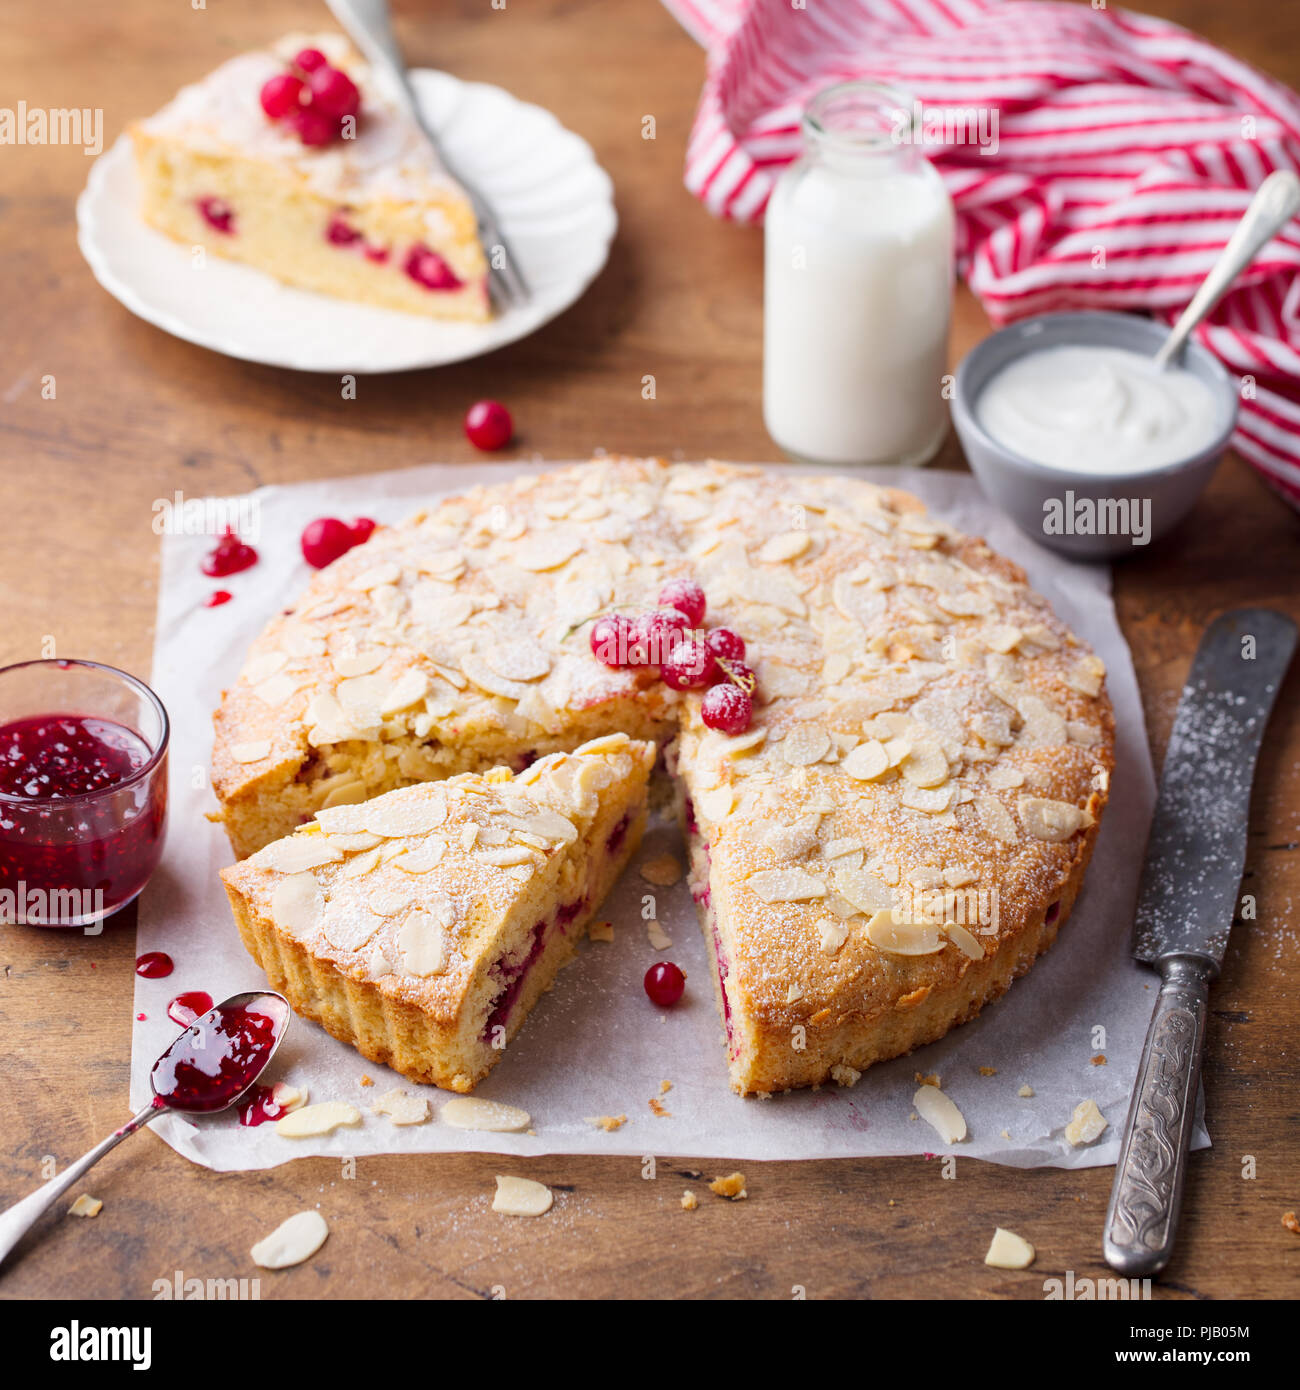 Almond and raspberry cake, Bakewell tart. Traditional British pastry. Wooden background. - Stock Image